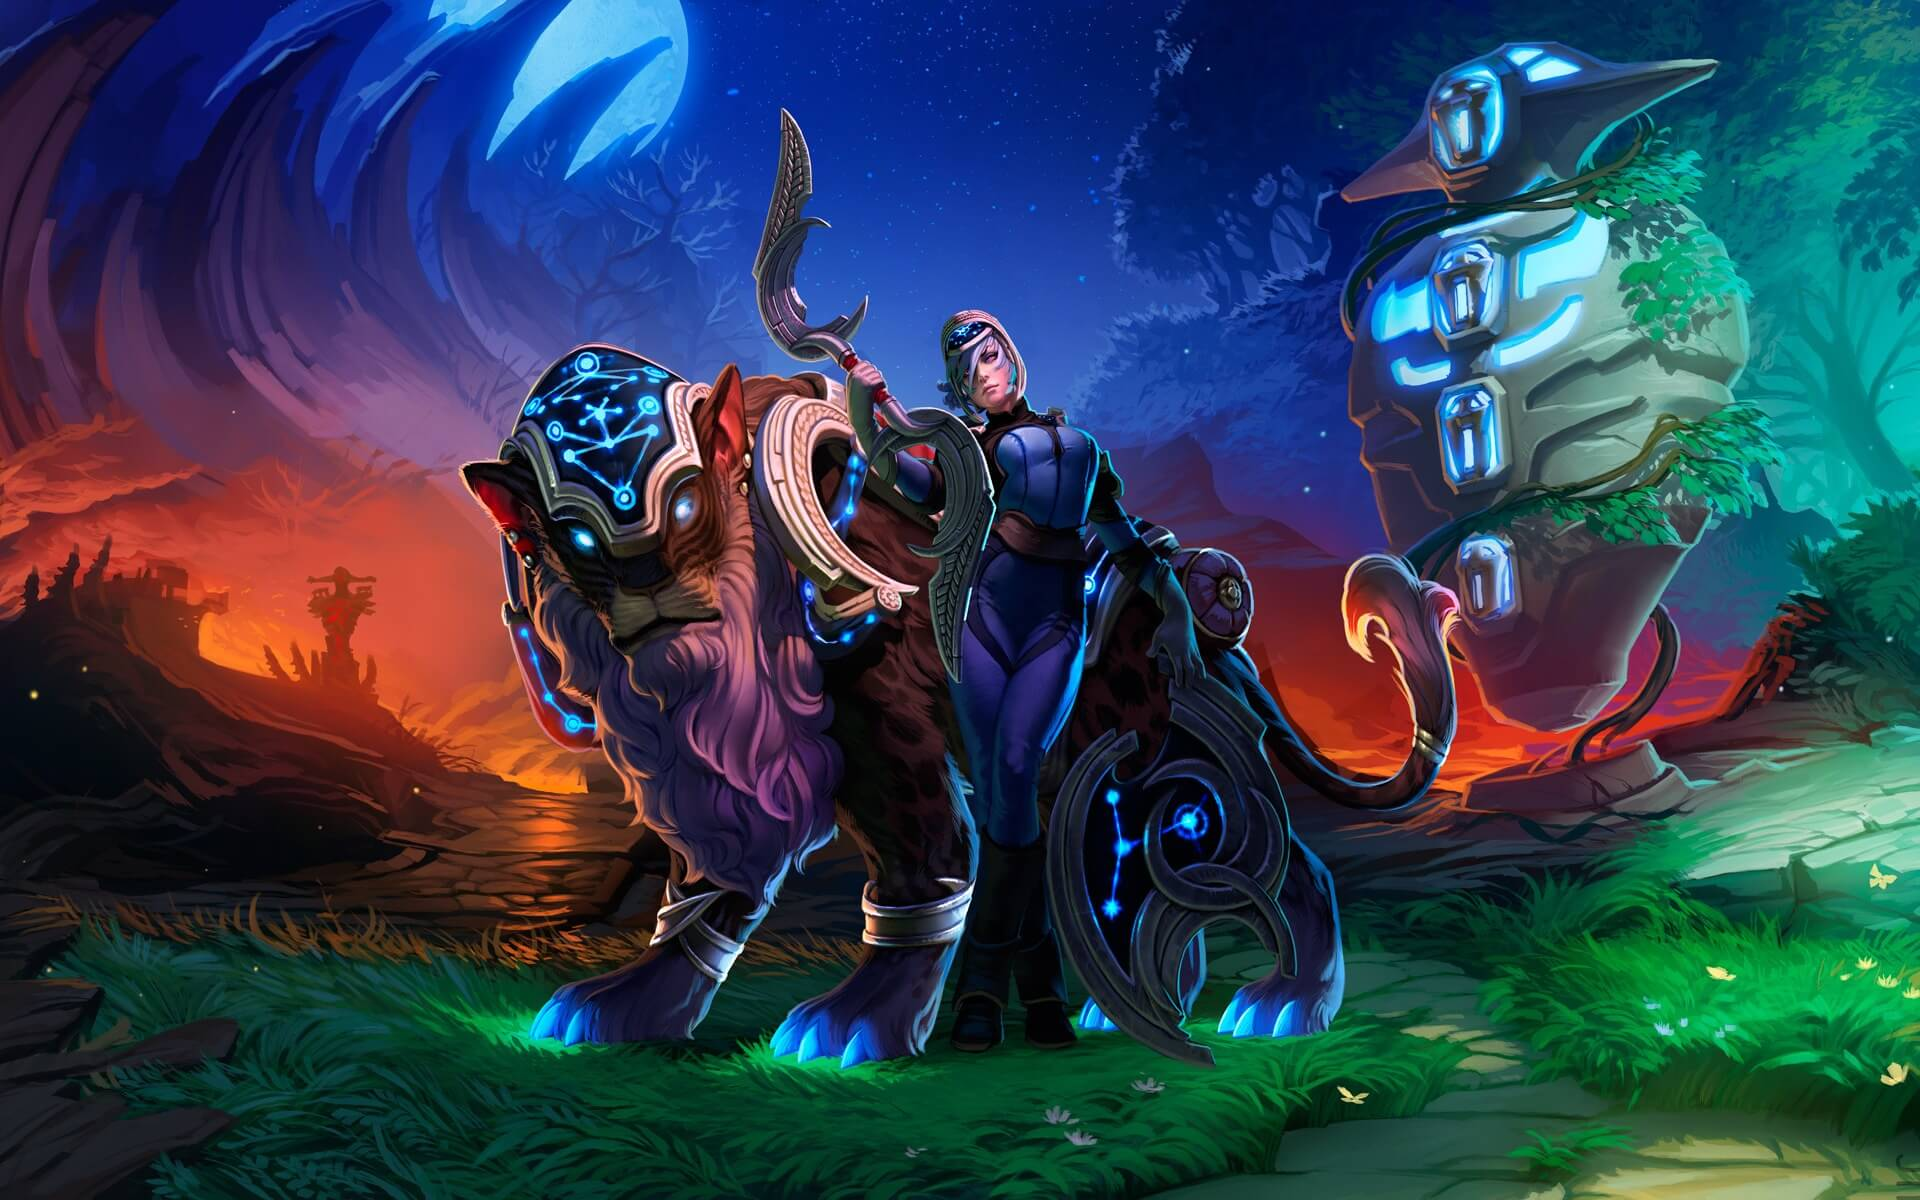 dota 2 loading screen wallpaper background